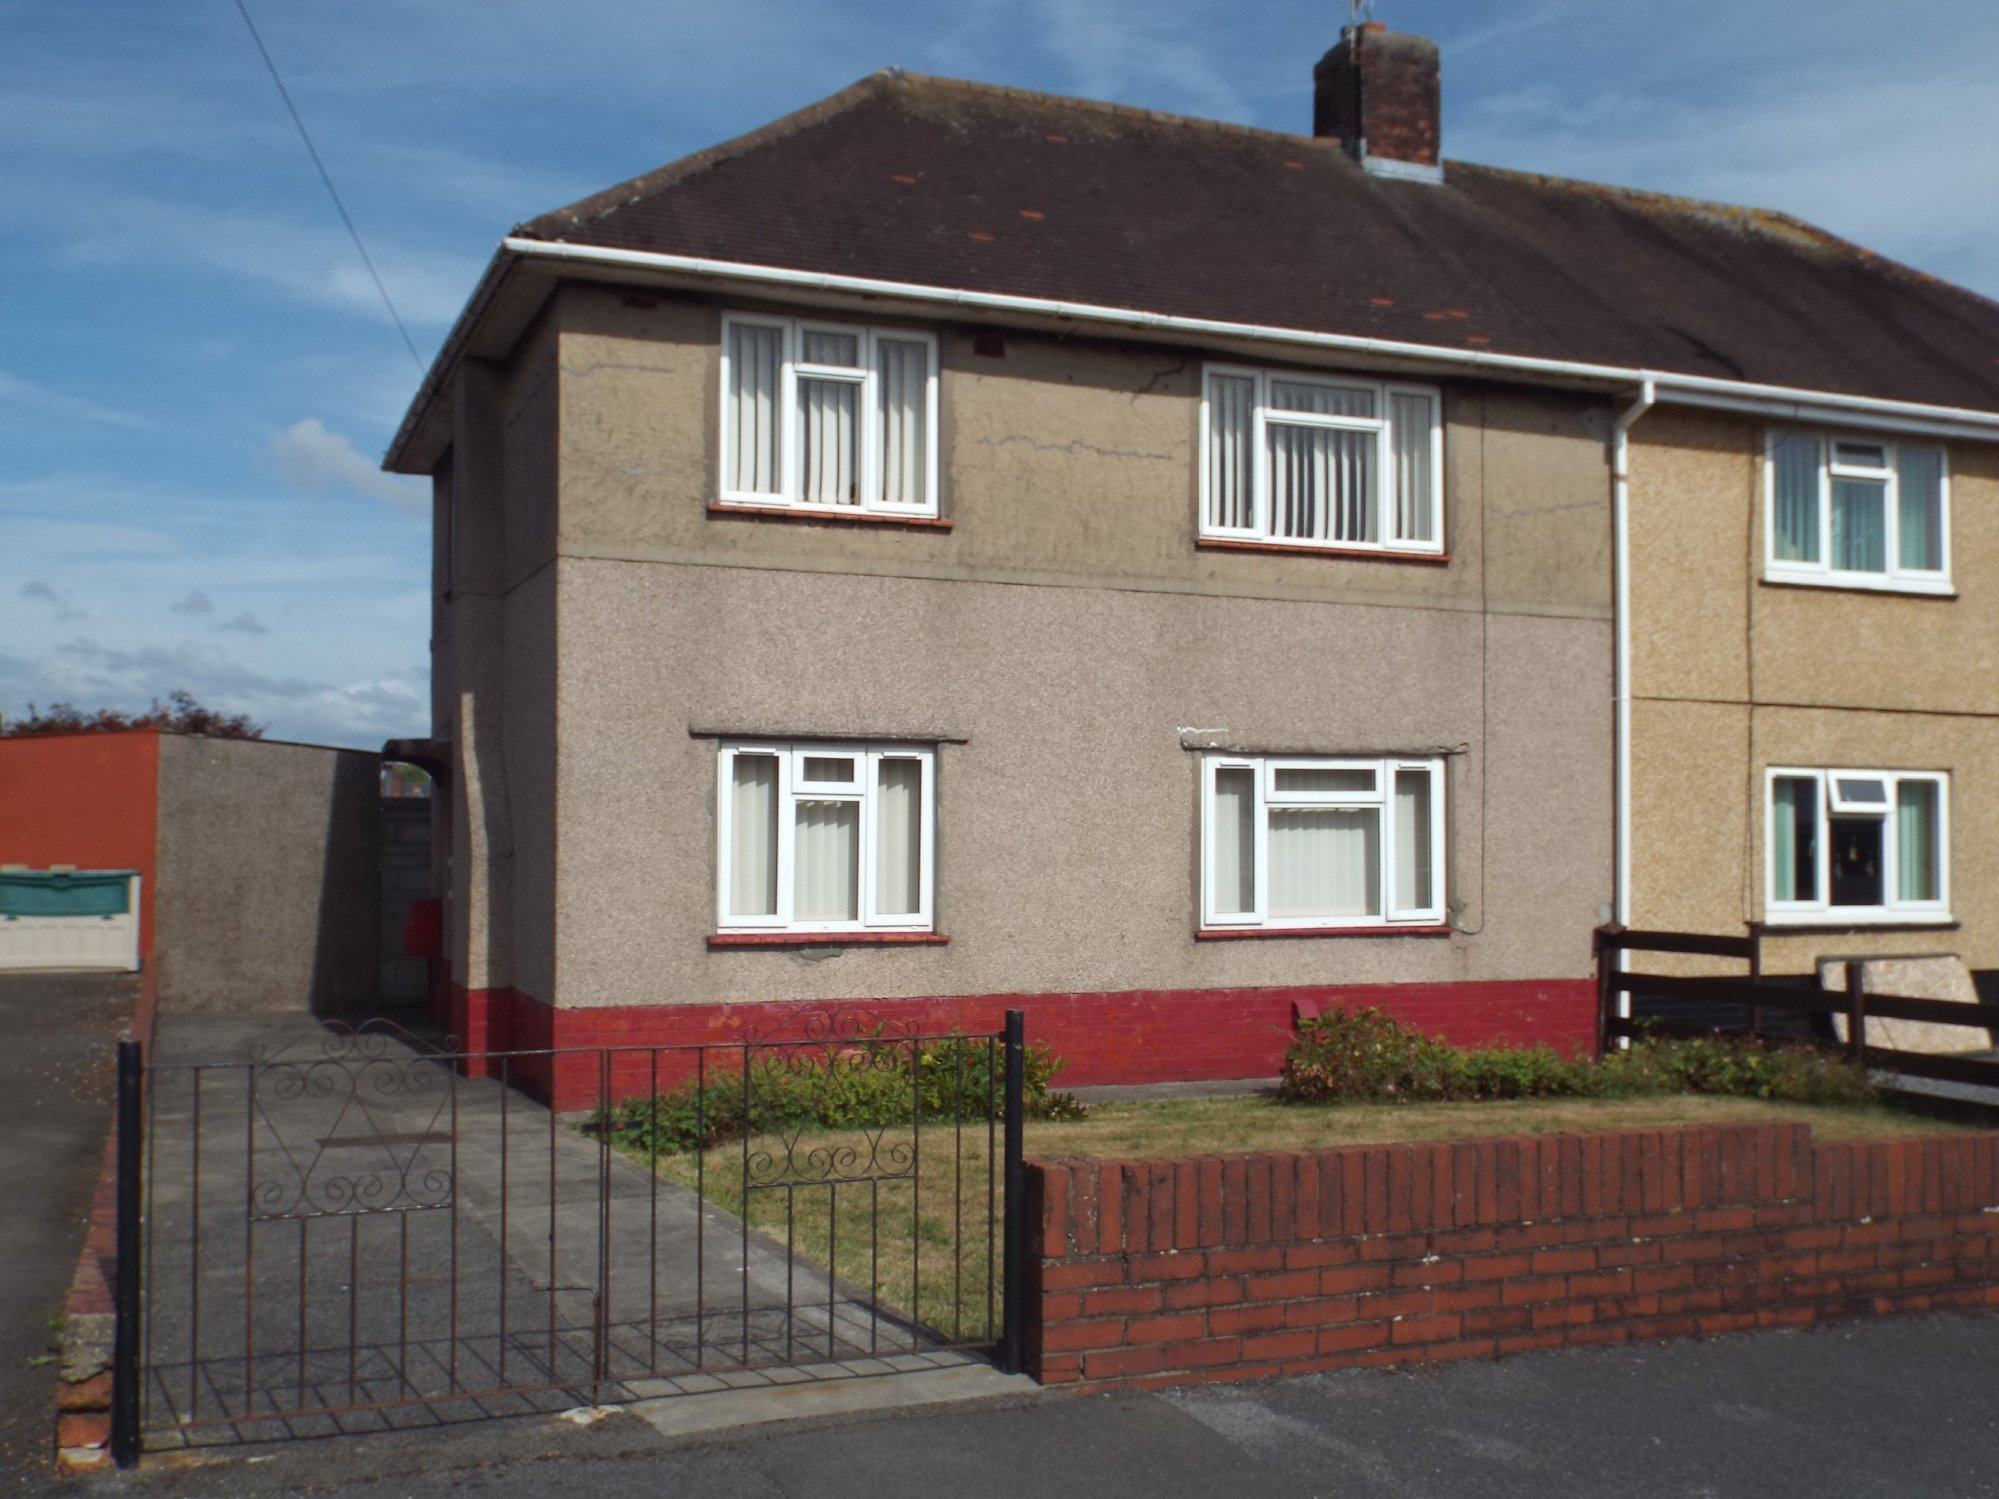 Amanwy, Llanelli Sa14, 3 Bedroom Semi Detached House For Sale